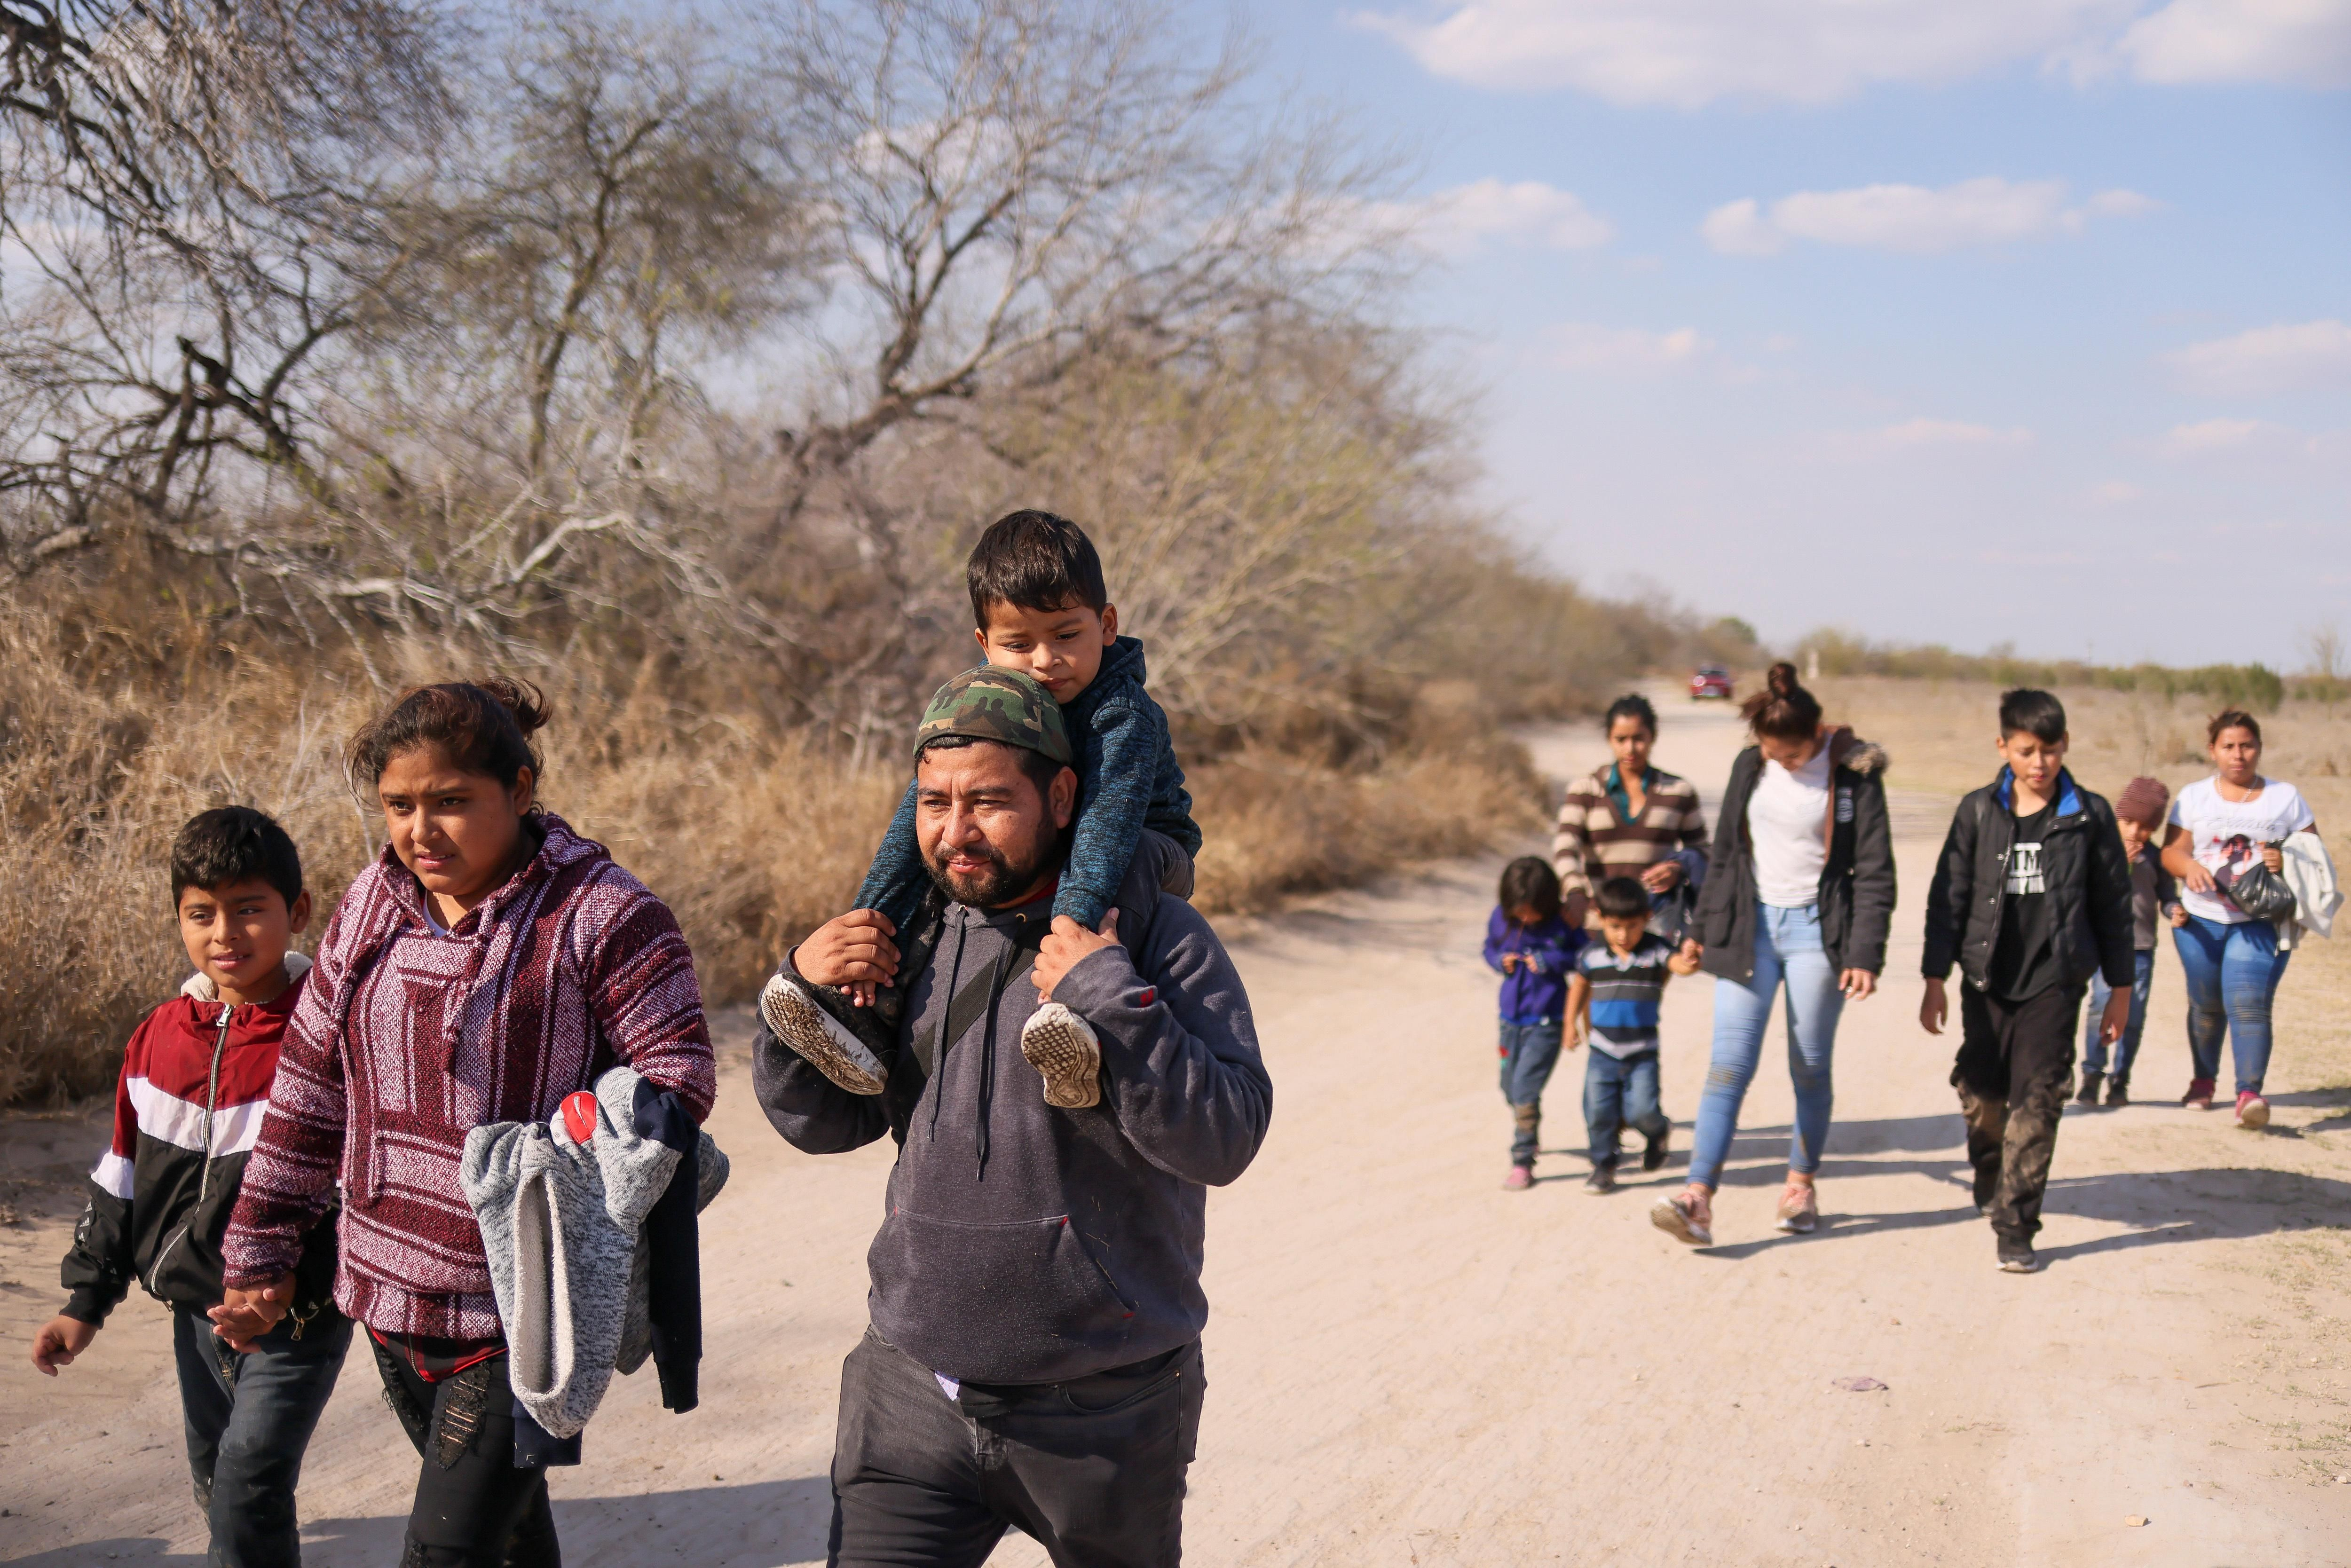 Migrant families with children walk along a dirt road after crossing the Rio Grande River into the United States from Mexico in Penitas, Texas, U.S., March 6, 2021.